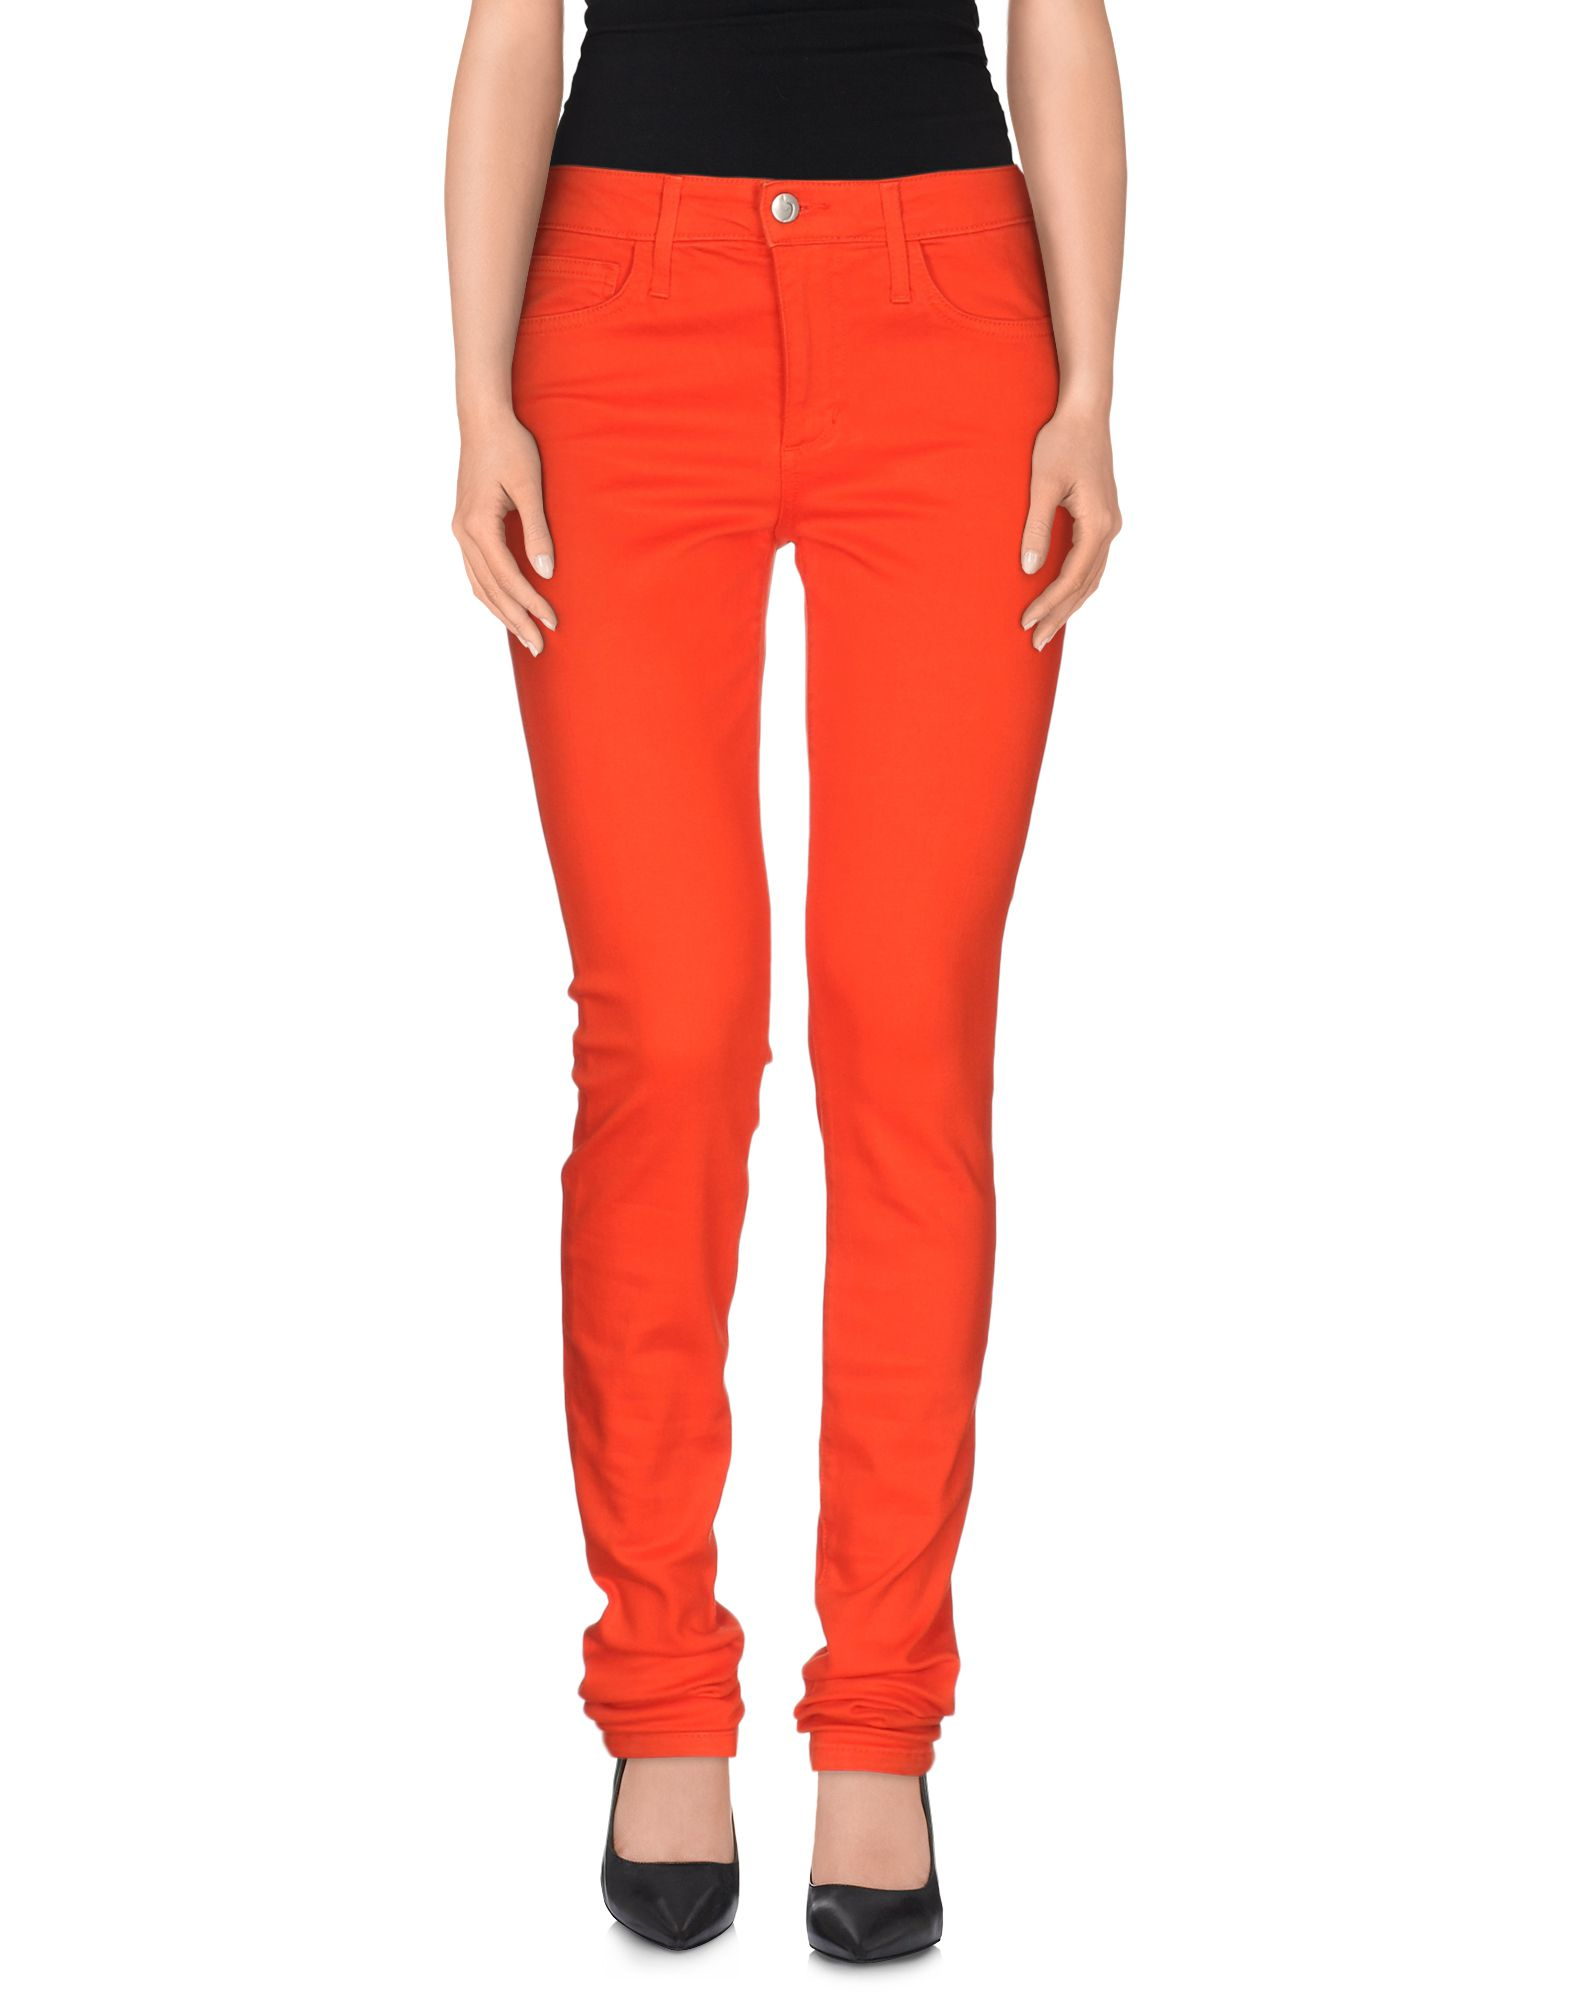 Find Orange women's jeans at ShopStyle. Shop the latest collection of Orange women's jeans from the most popular stores - all in one place.